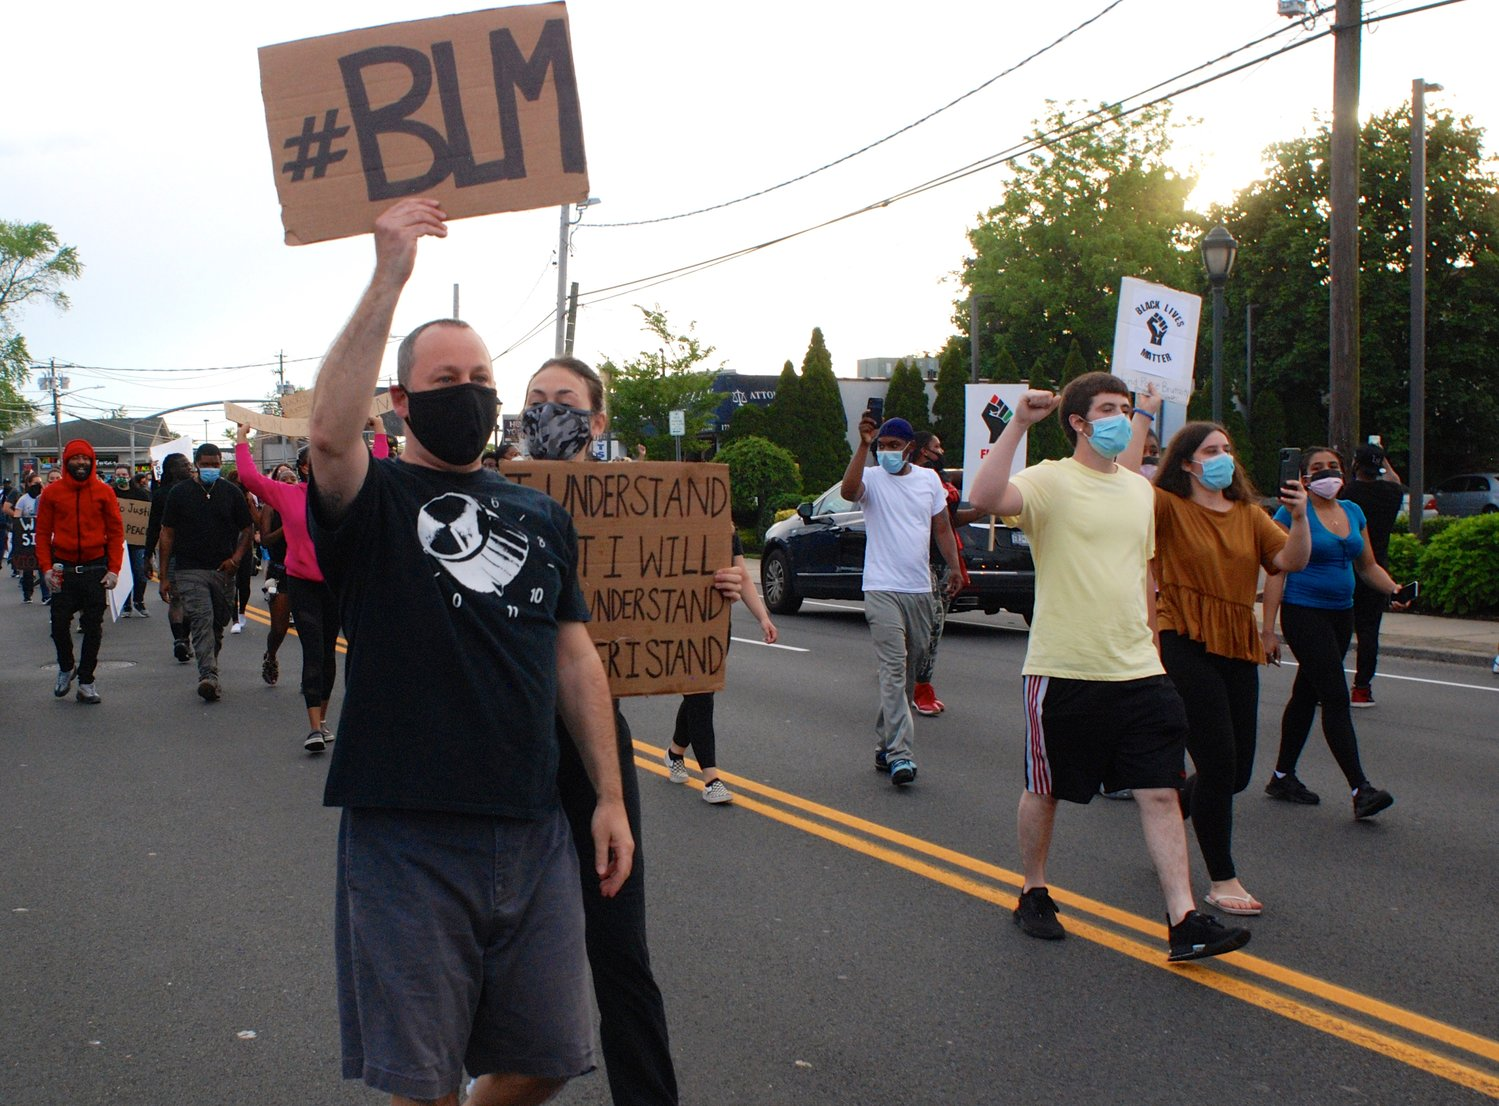 Many marchers brandished Black Lives Matter posters.